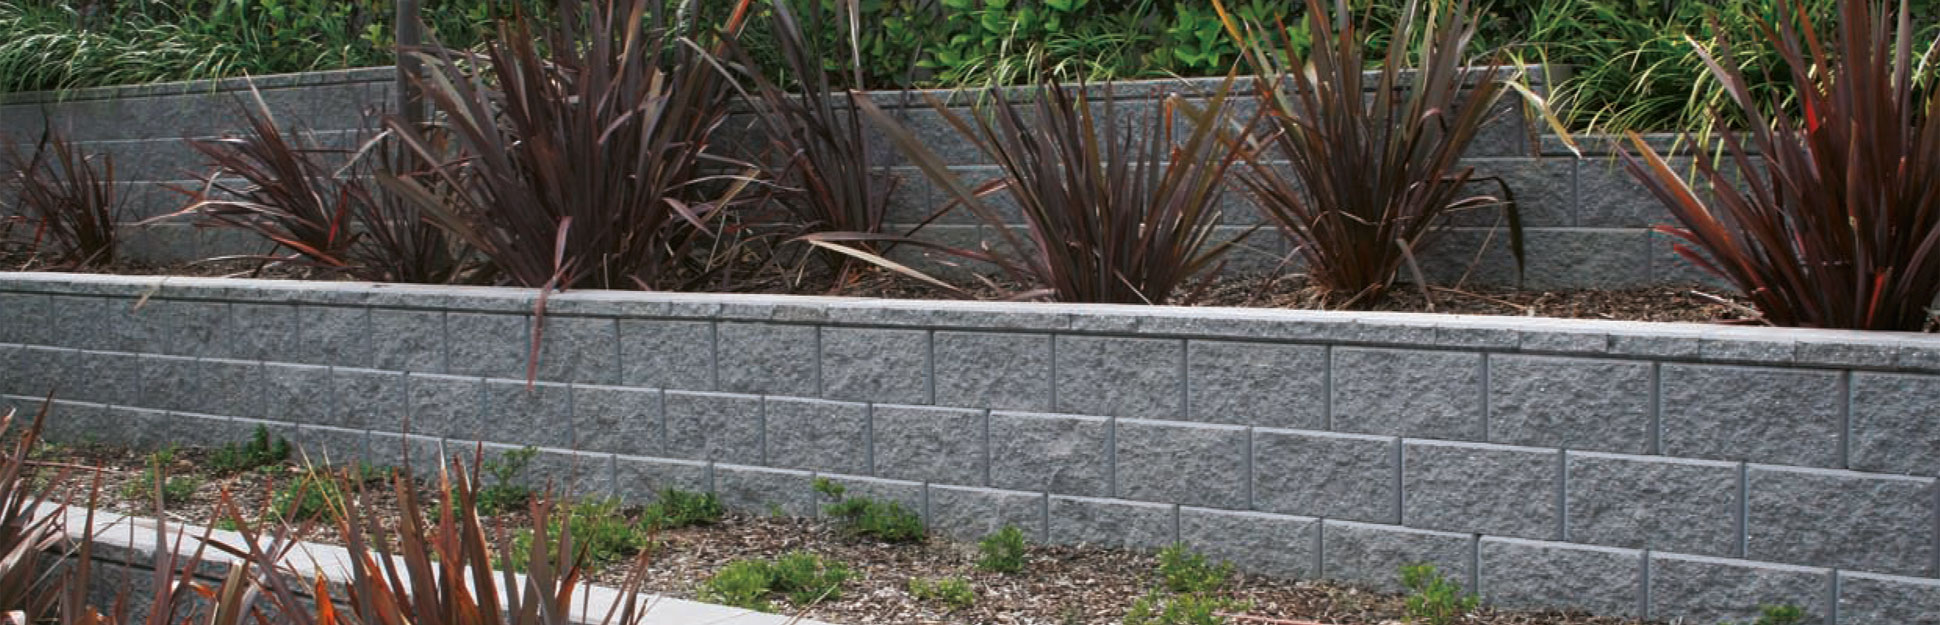 Retaining Wall Tasman Block Cowra Concrete Products